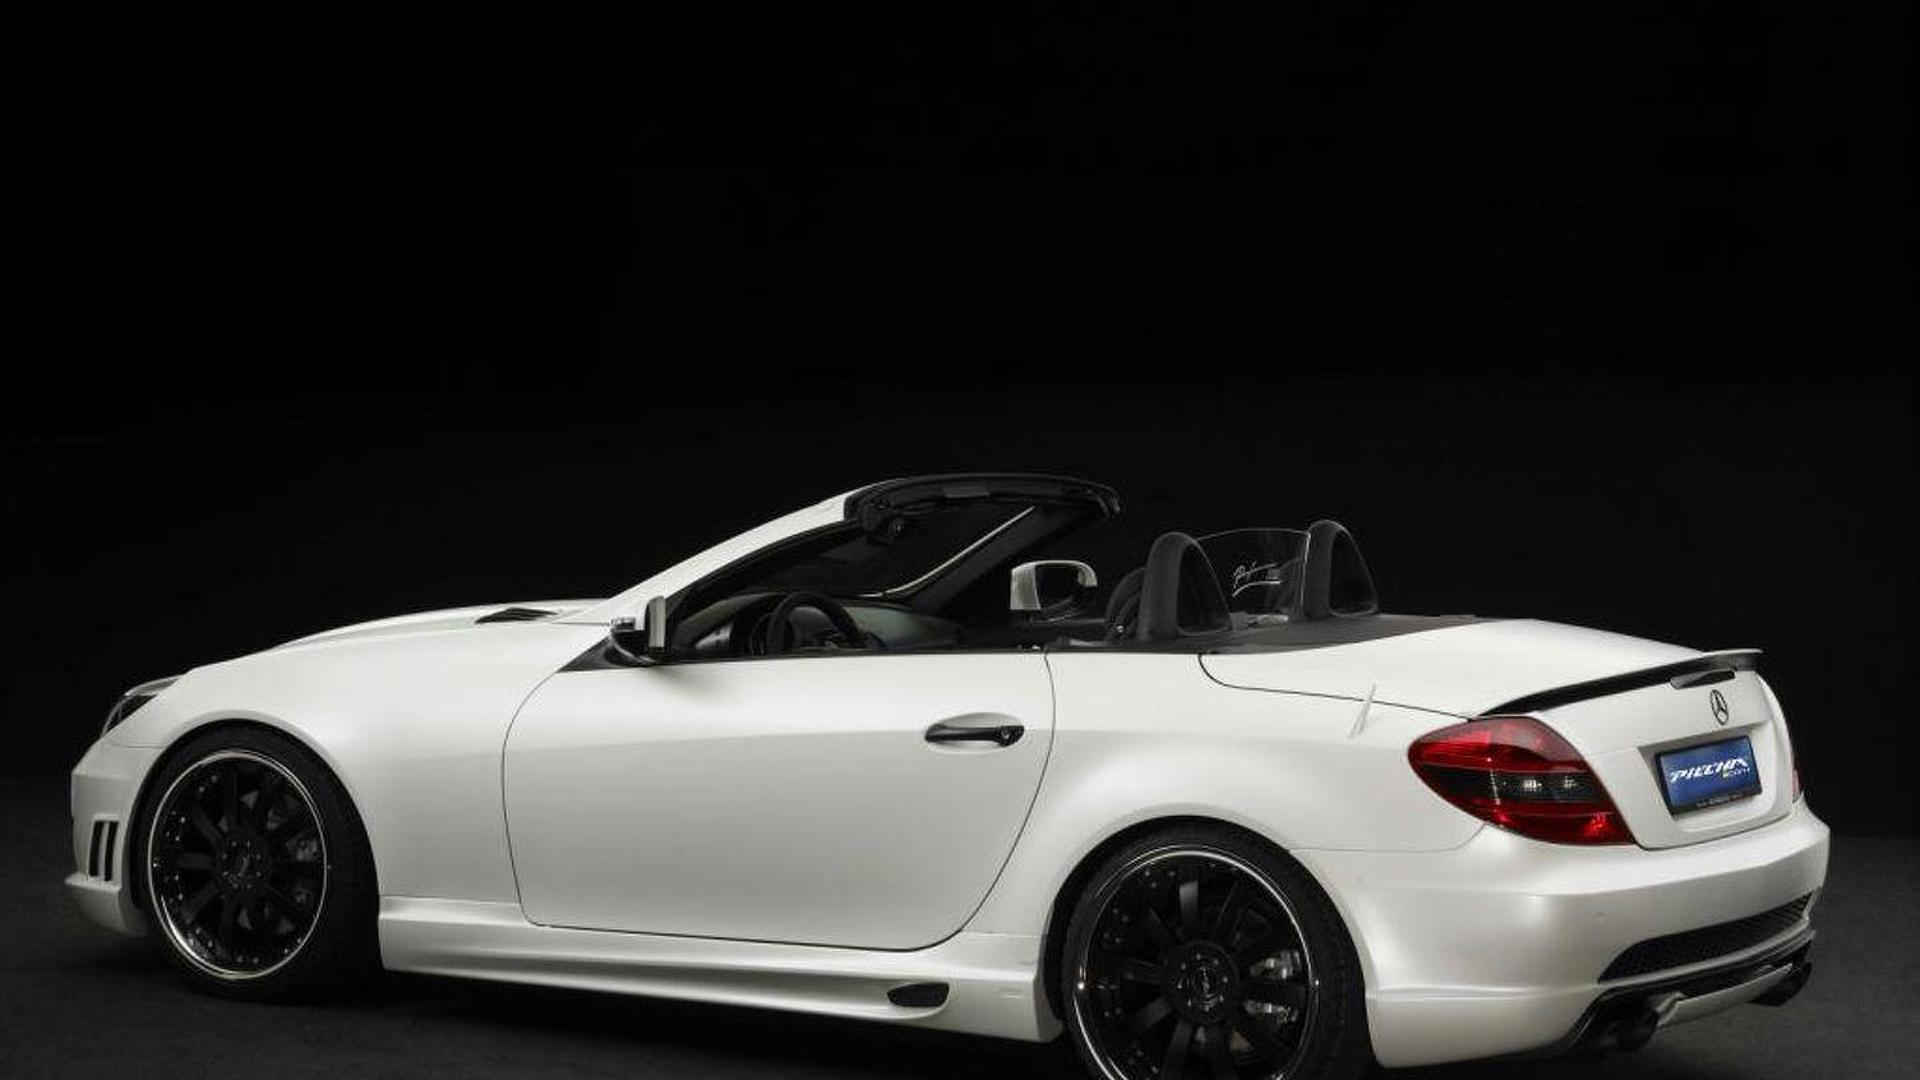 Piecha Design announces Final Performance RS Edition - based on the Mercedes SLK